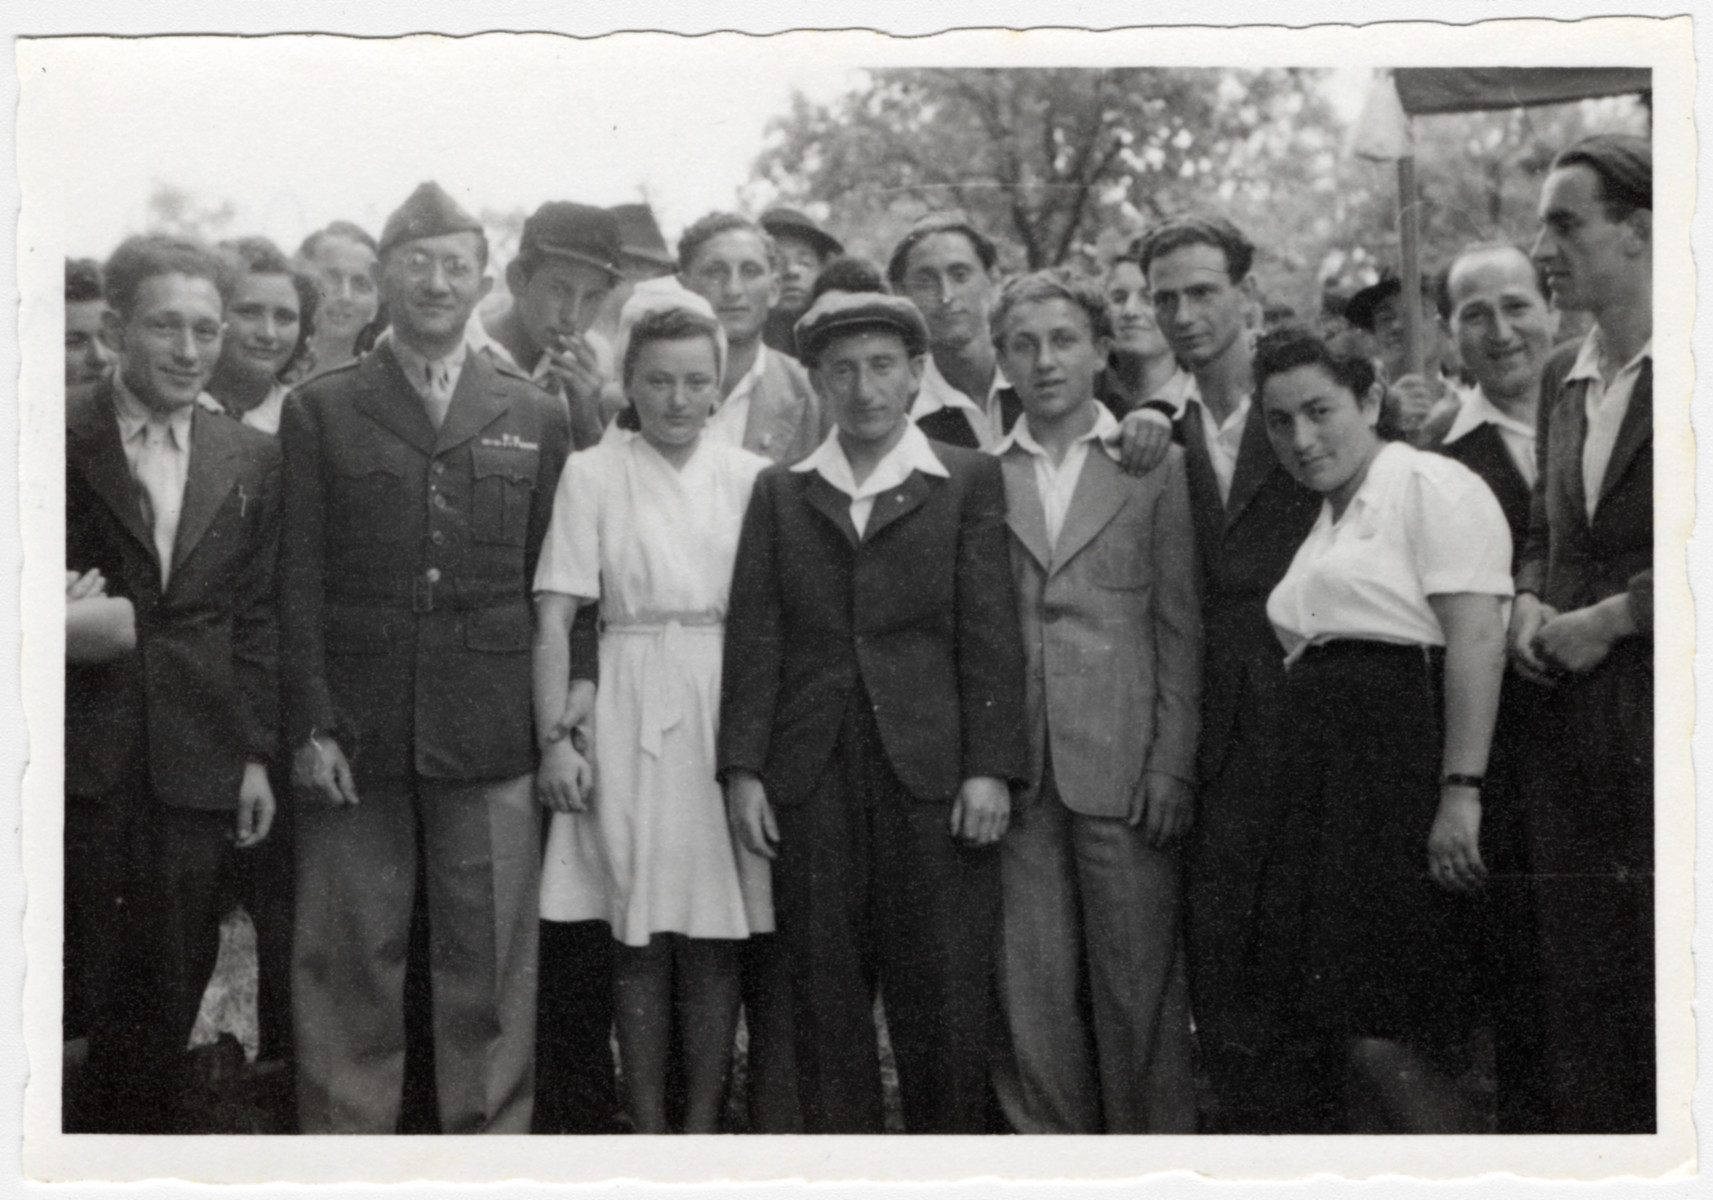 UNRRA director, Mordecai Schwartz poses with residents of the Wildflecken displaced persons' camp.